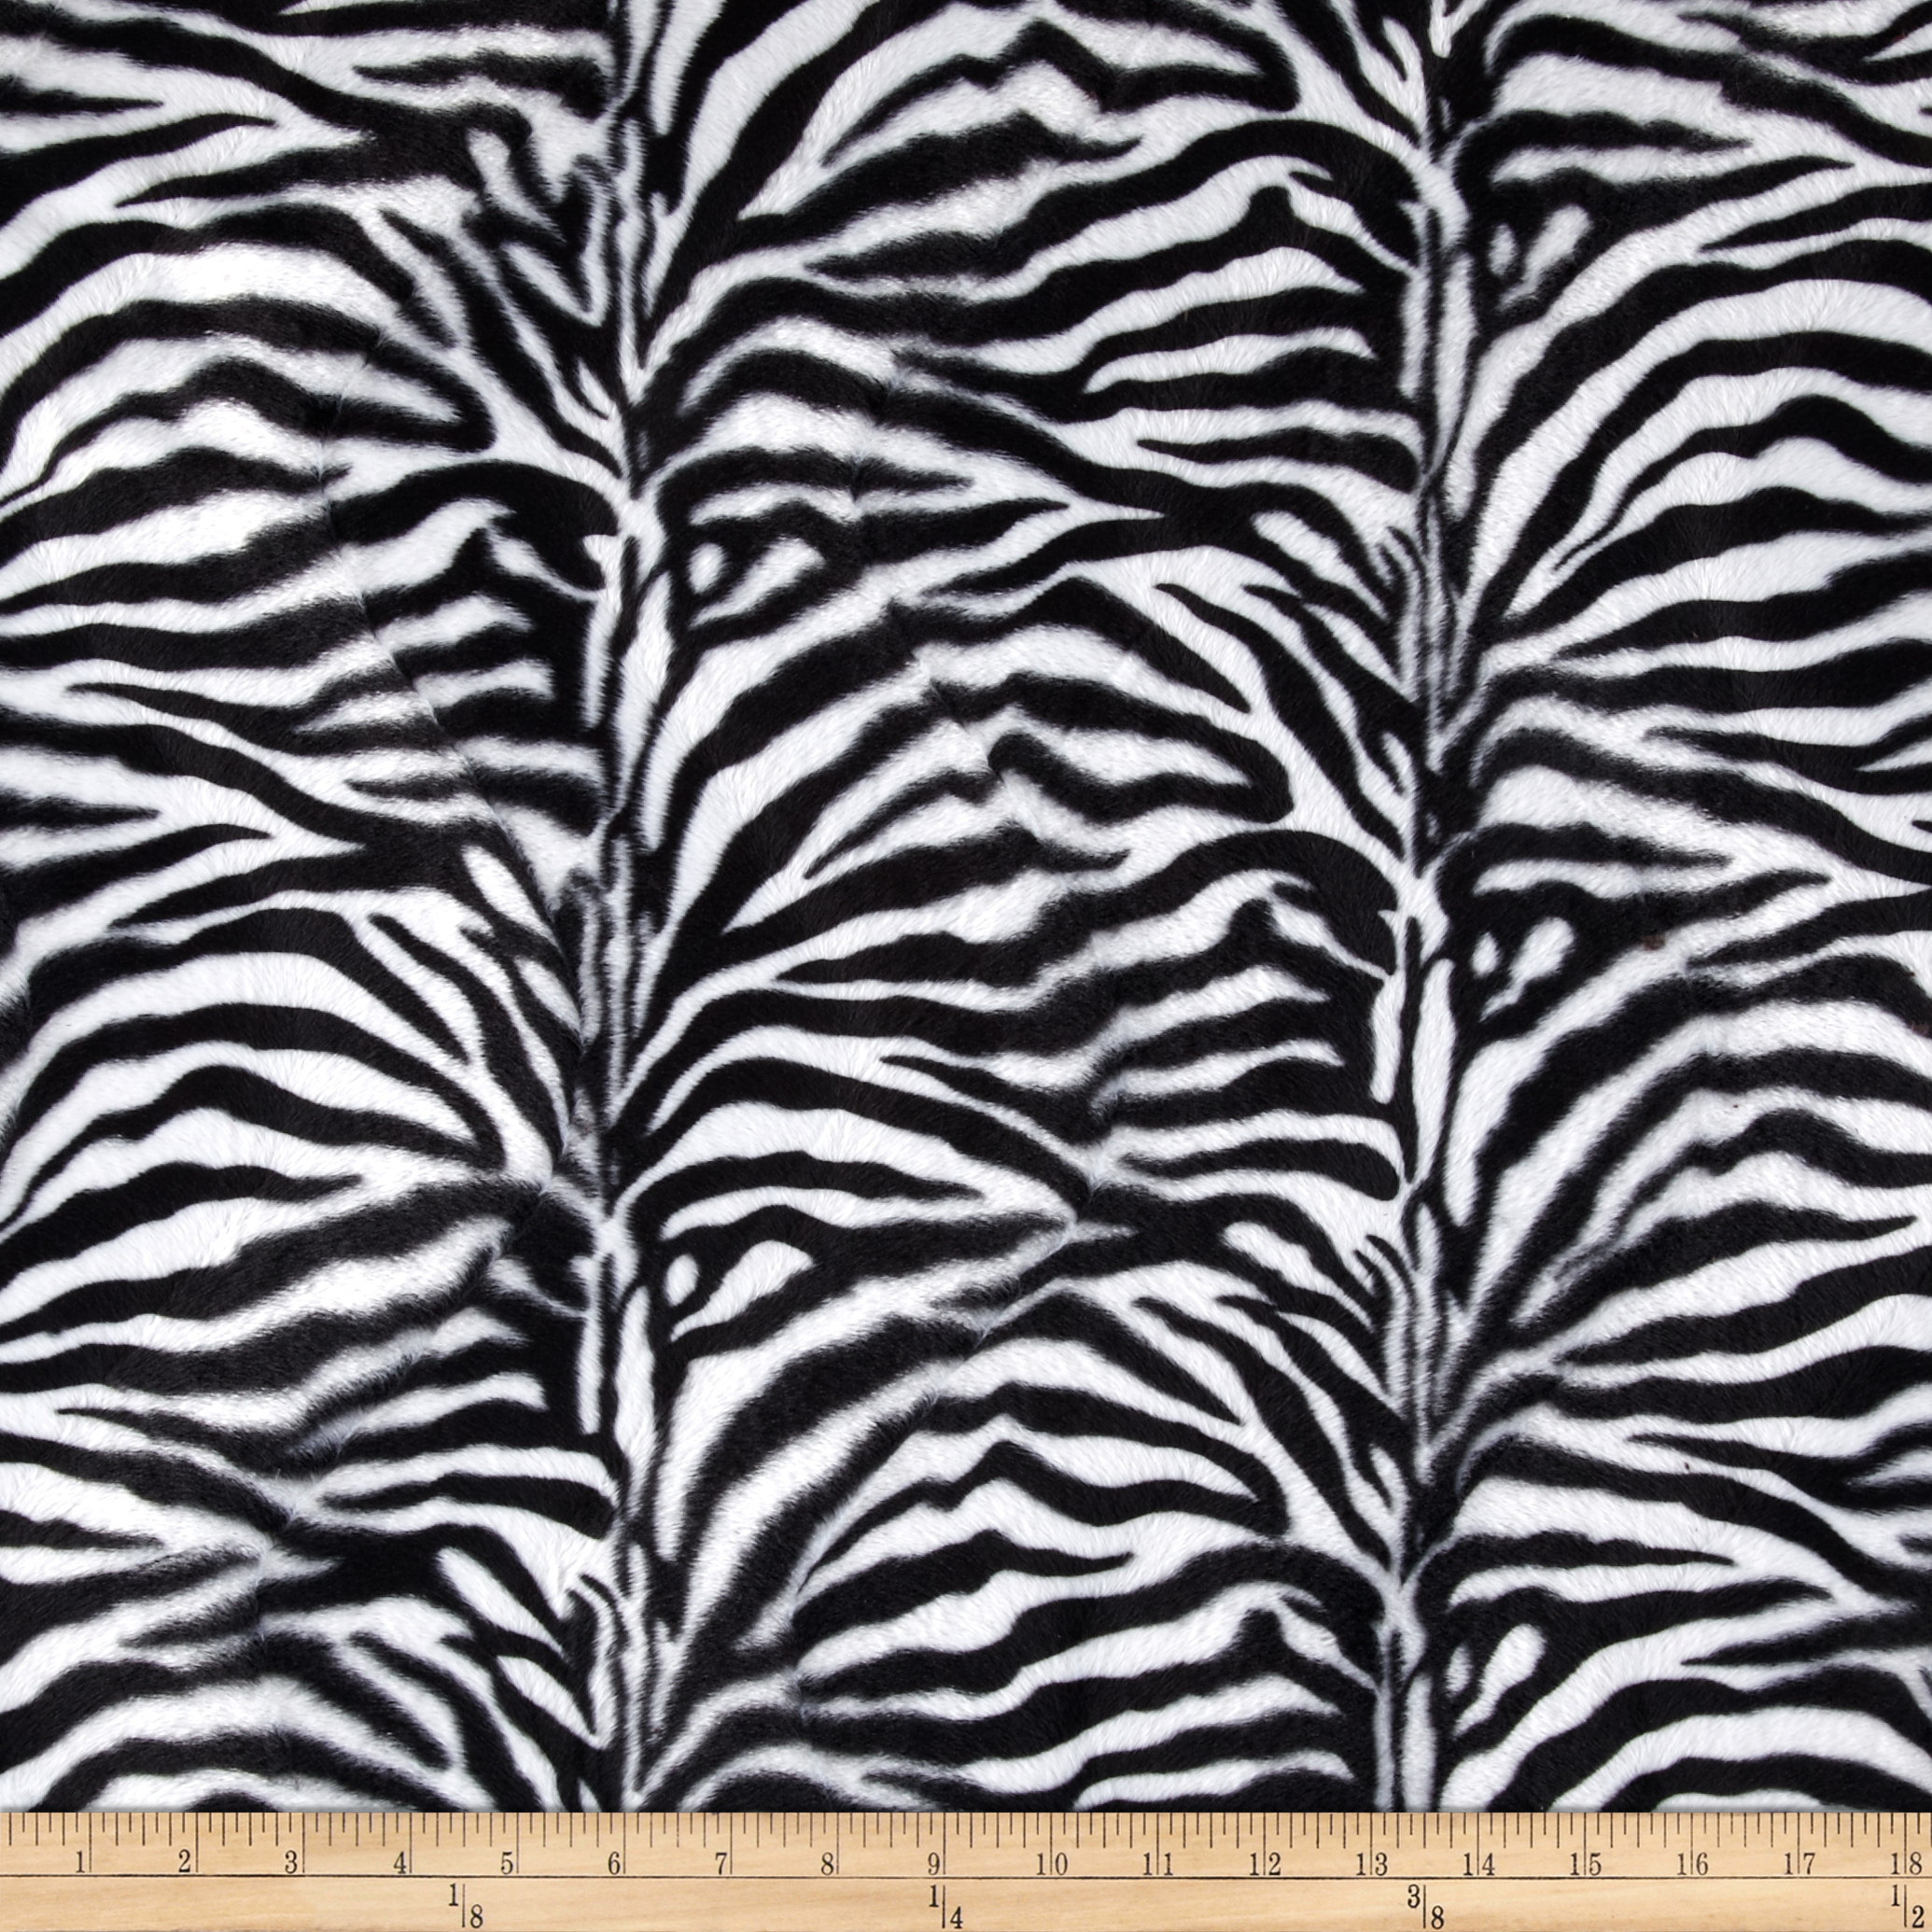 Velboa Faux Fur Zebra Small White/Black